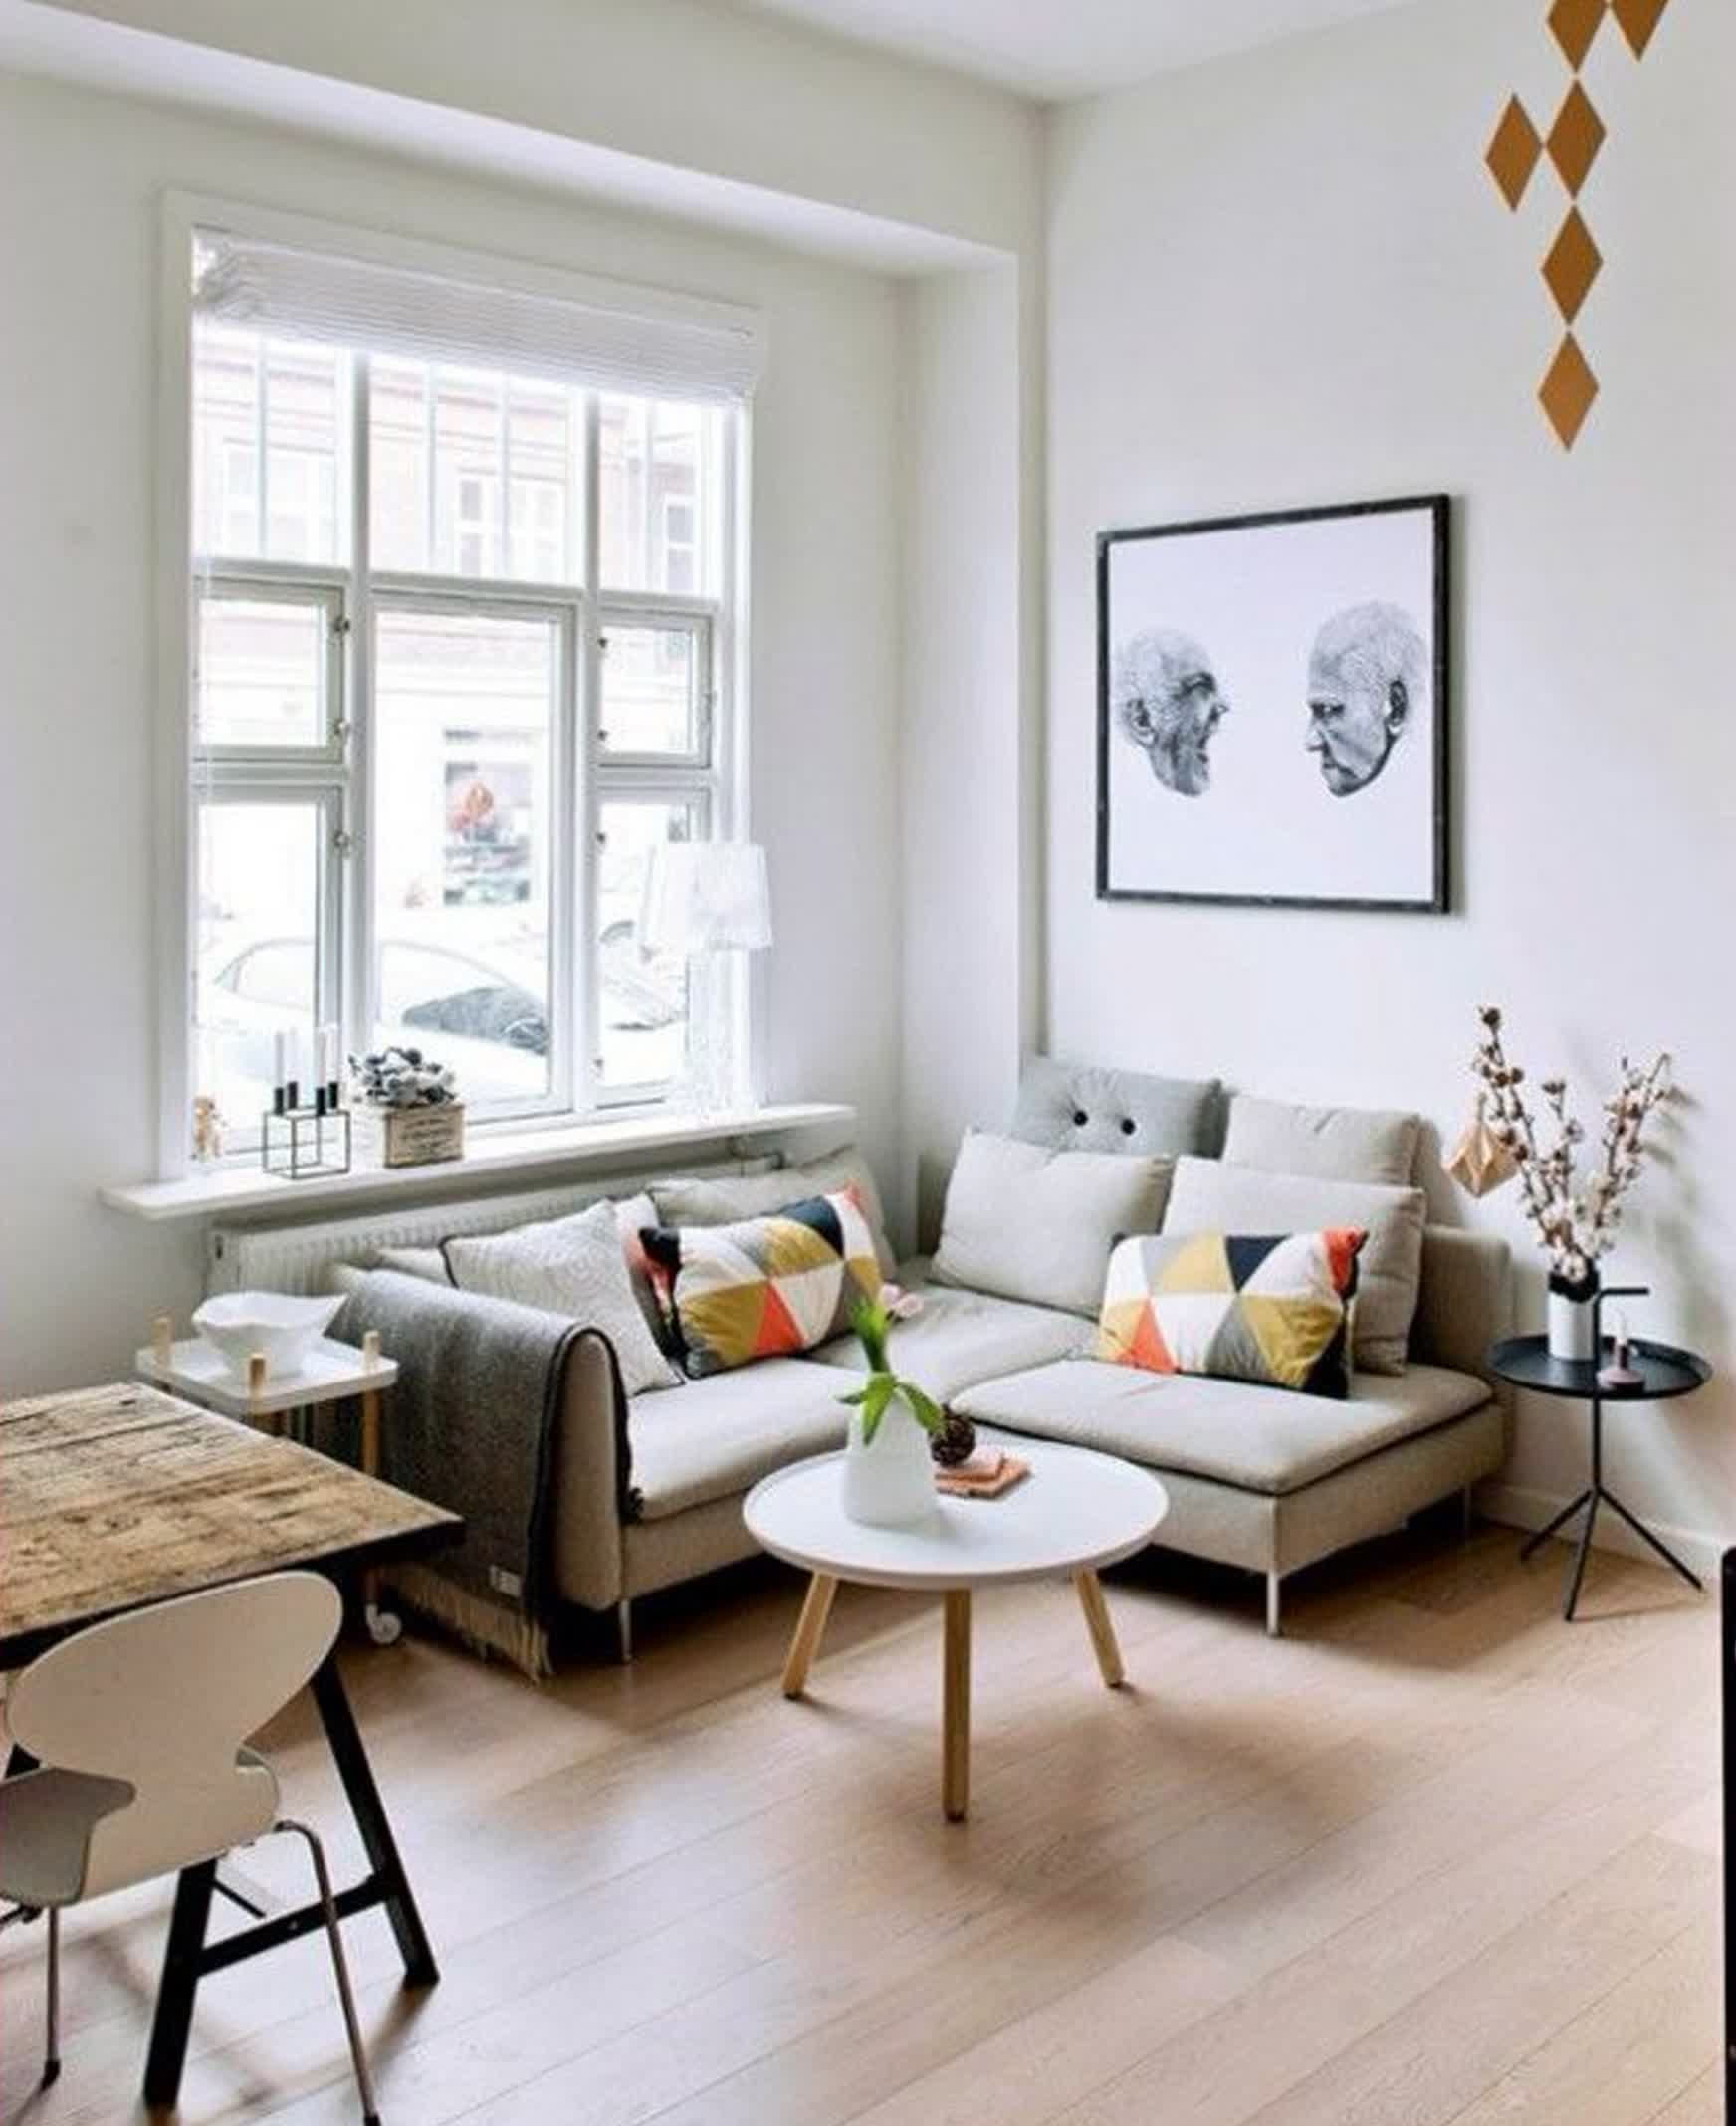 7 Small Living Rooms That Prove Size Is Nothing But a Detail_3 small living rooms 5 Small Living Rooms That Prove Size Is Nothing But a Detail 7 Small Living Rooms That Prove Size Is Nothing But a Detail 6